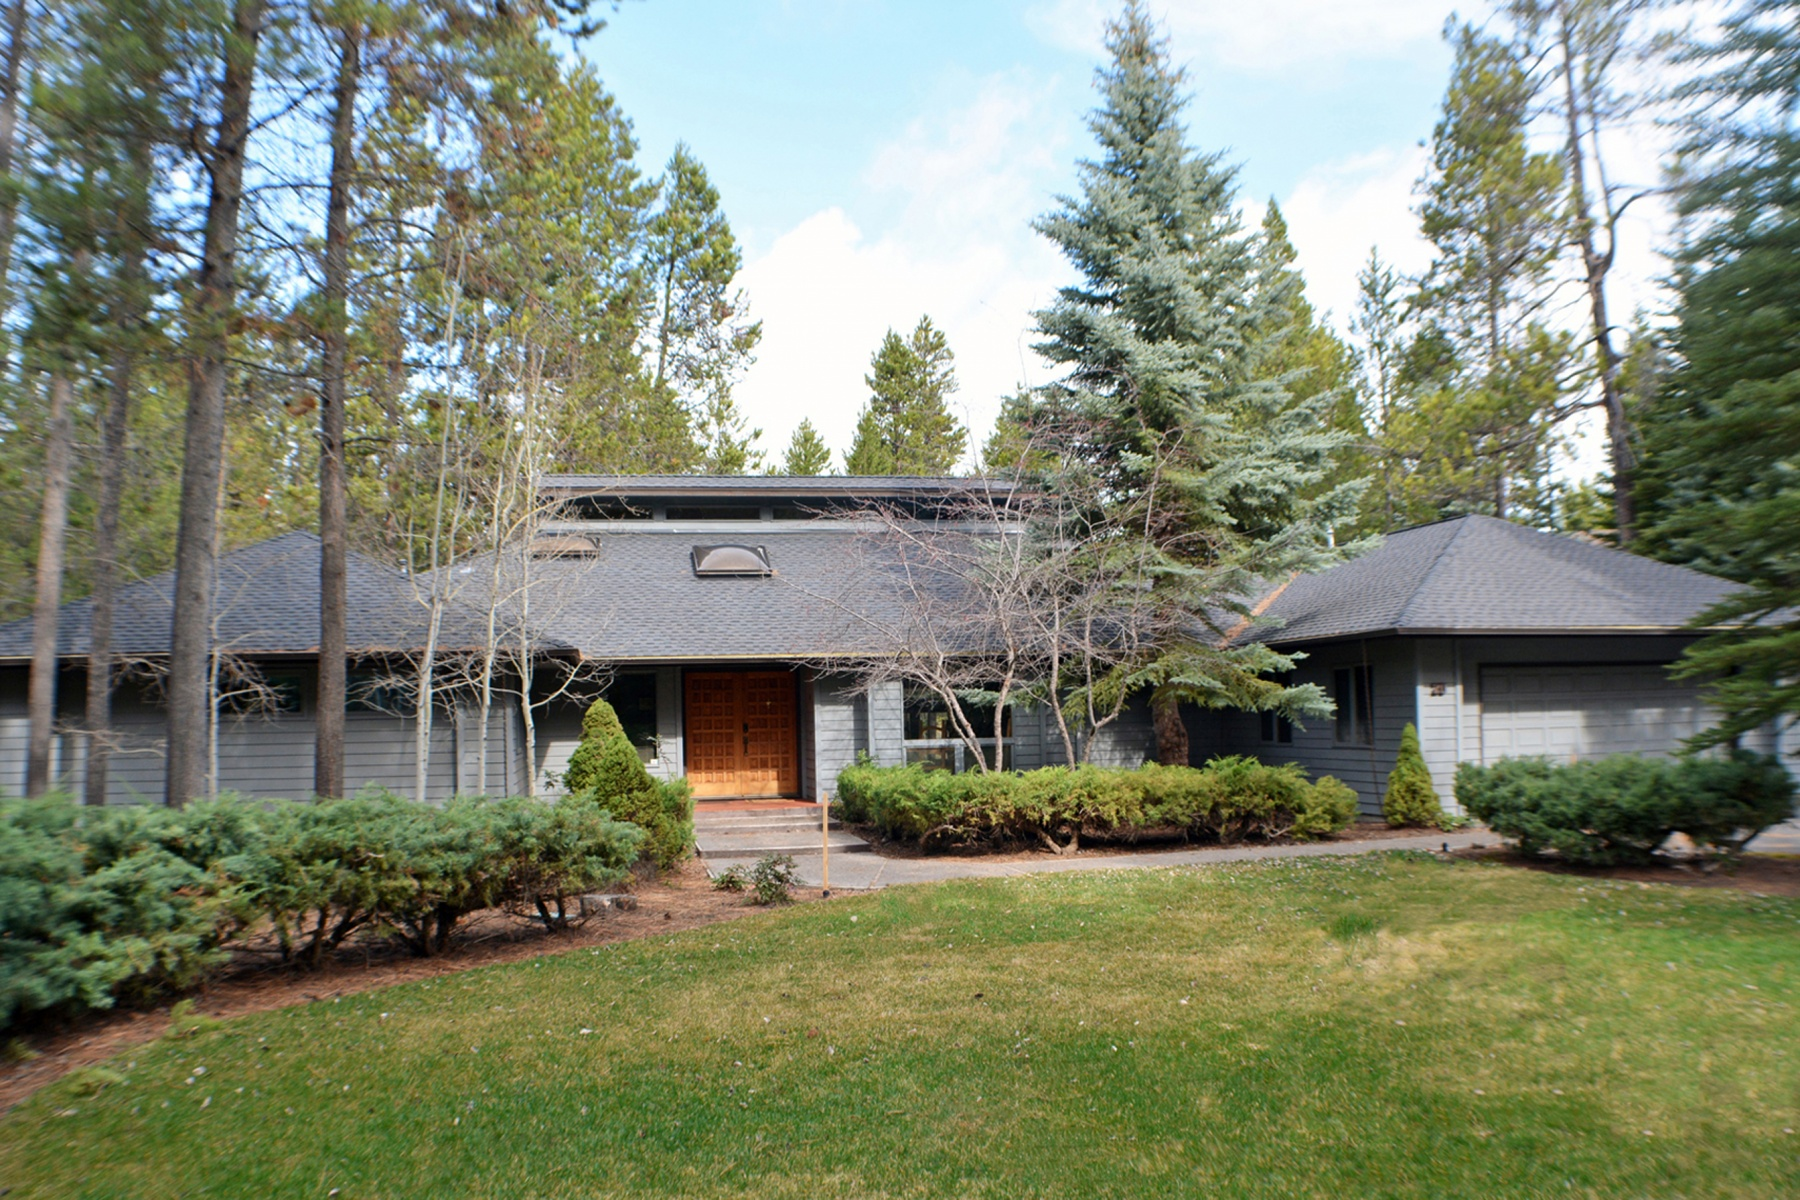 Single Family Home for Sale at 20 Siskin Lane, SUNRIVER 20 Siskin Ln Sunriver, Oregon, 97707 United States